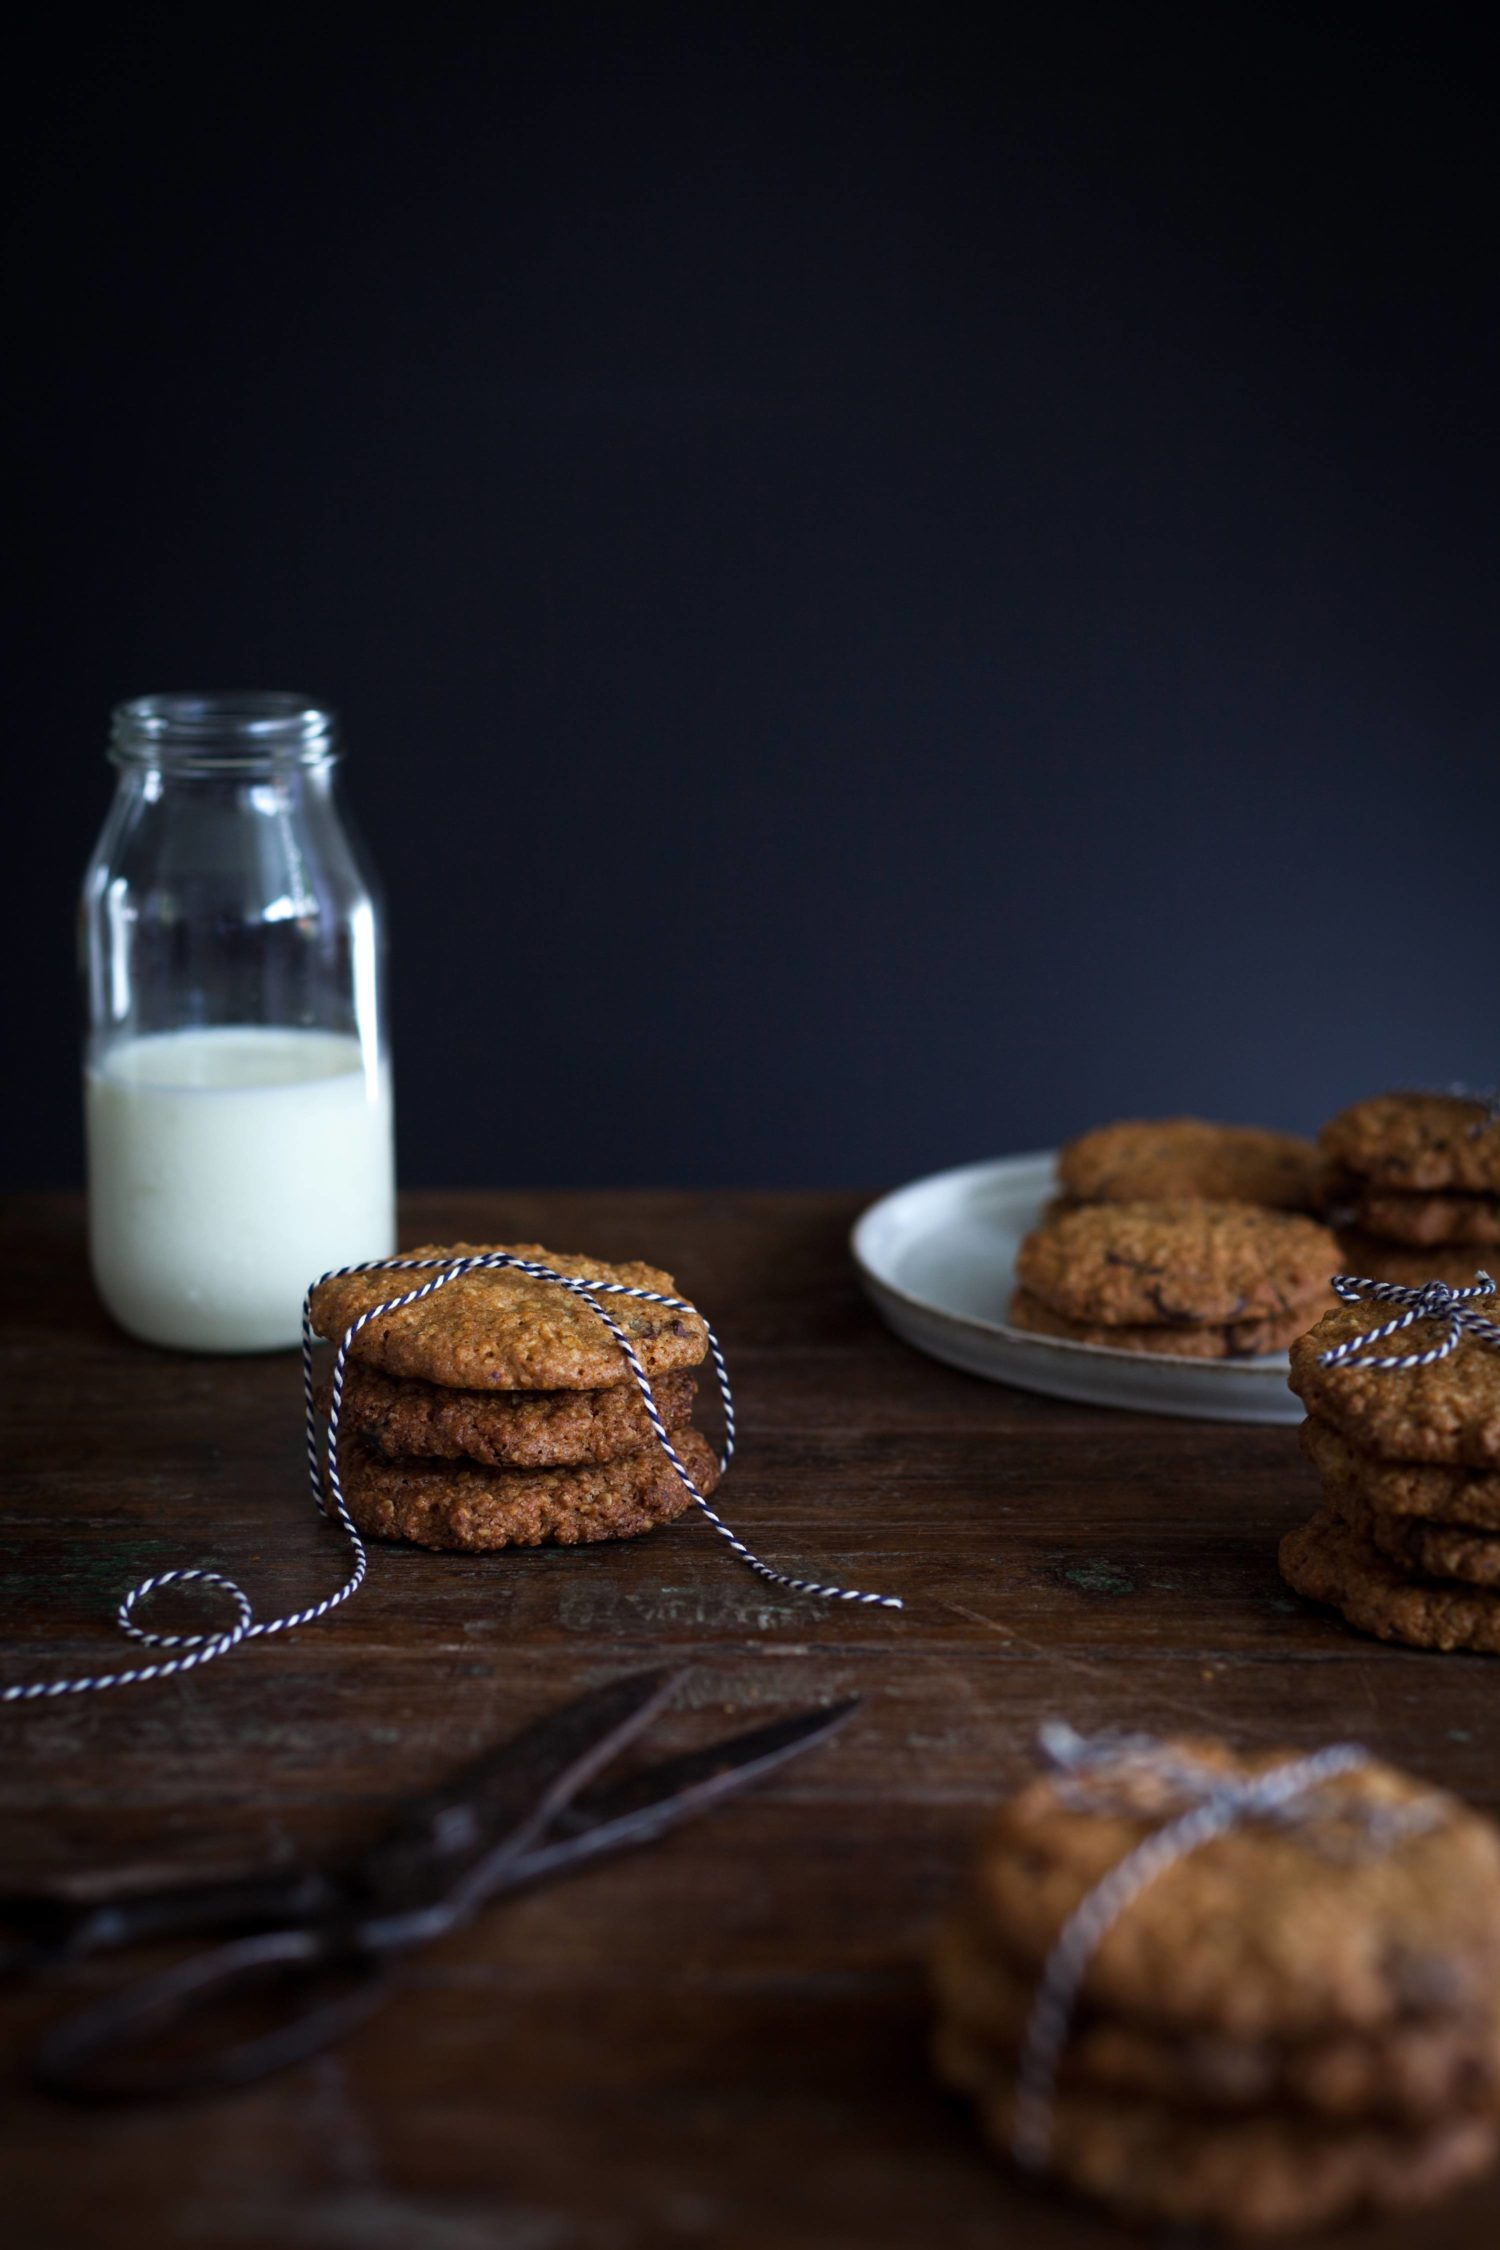 Oatmeal_chocolate_chip_cookies_ShareLoveNotSecrets_MarleenVisser_4